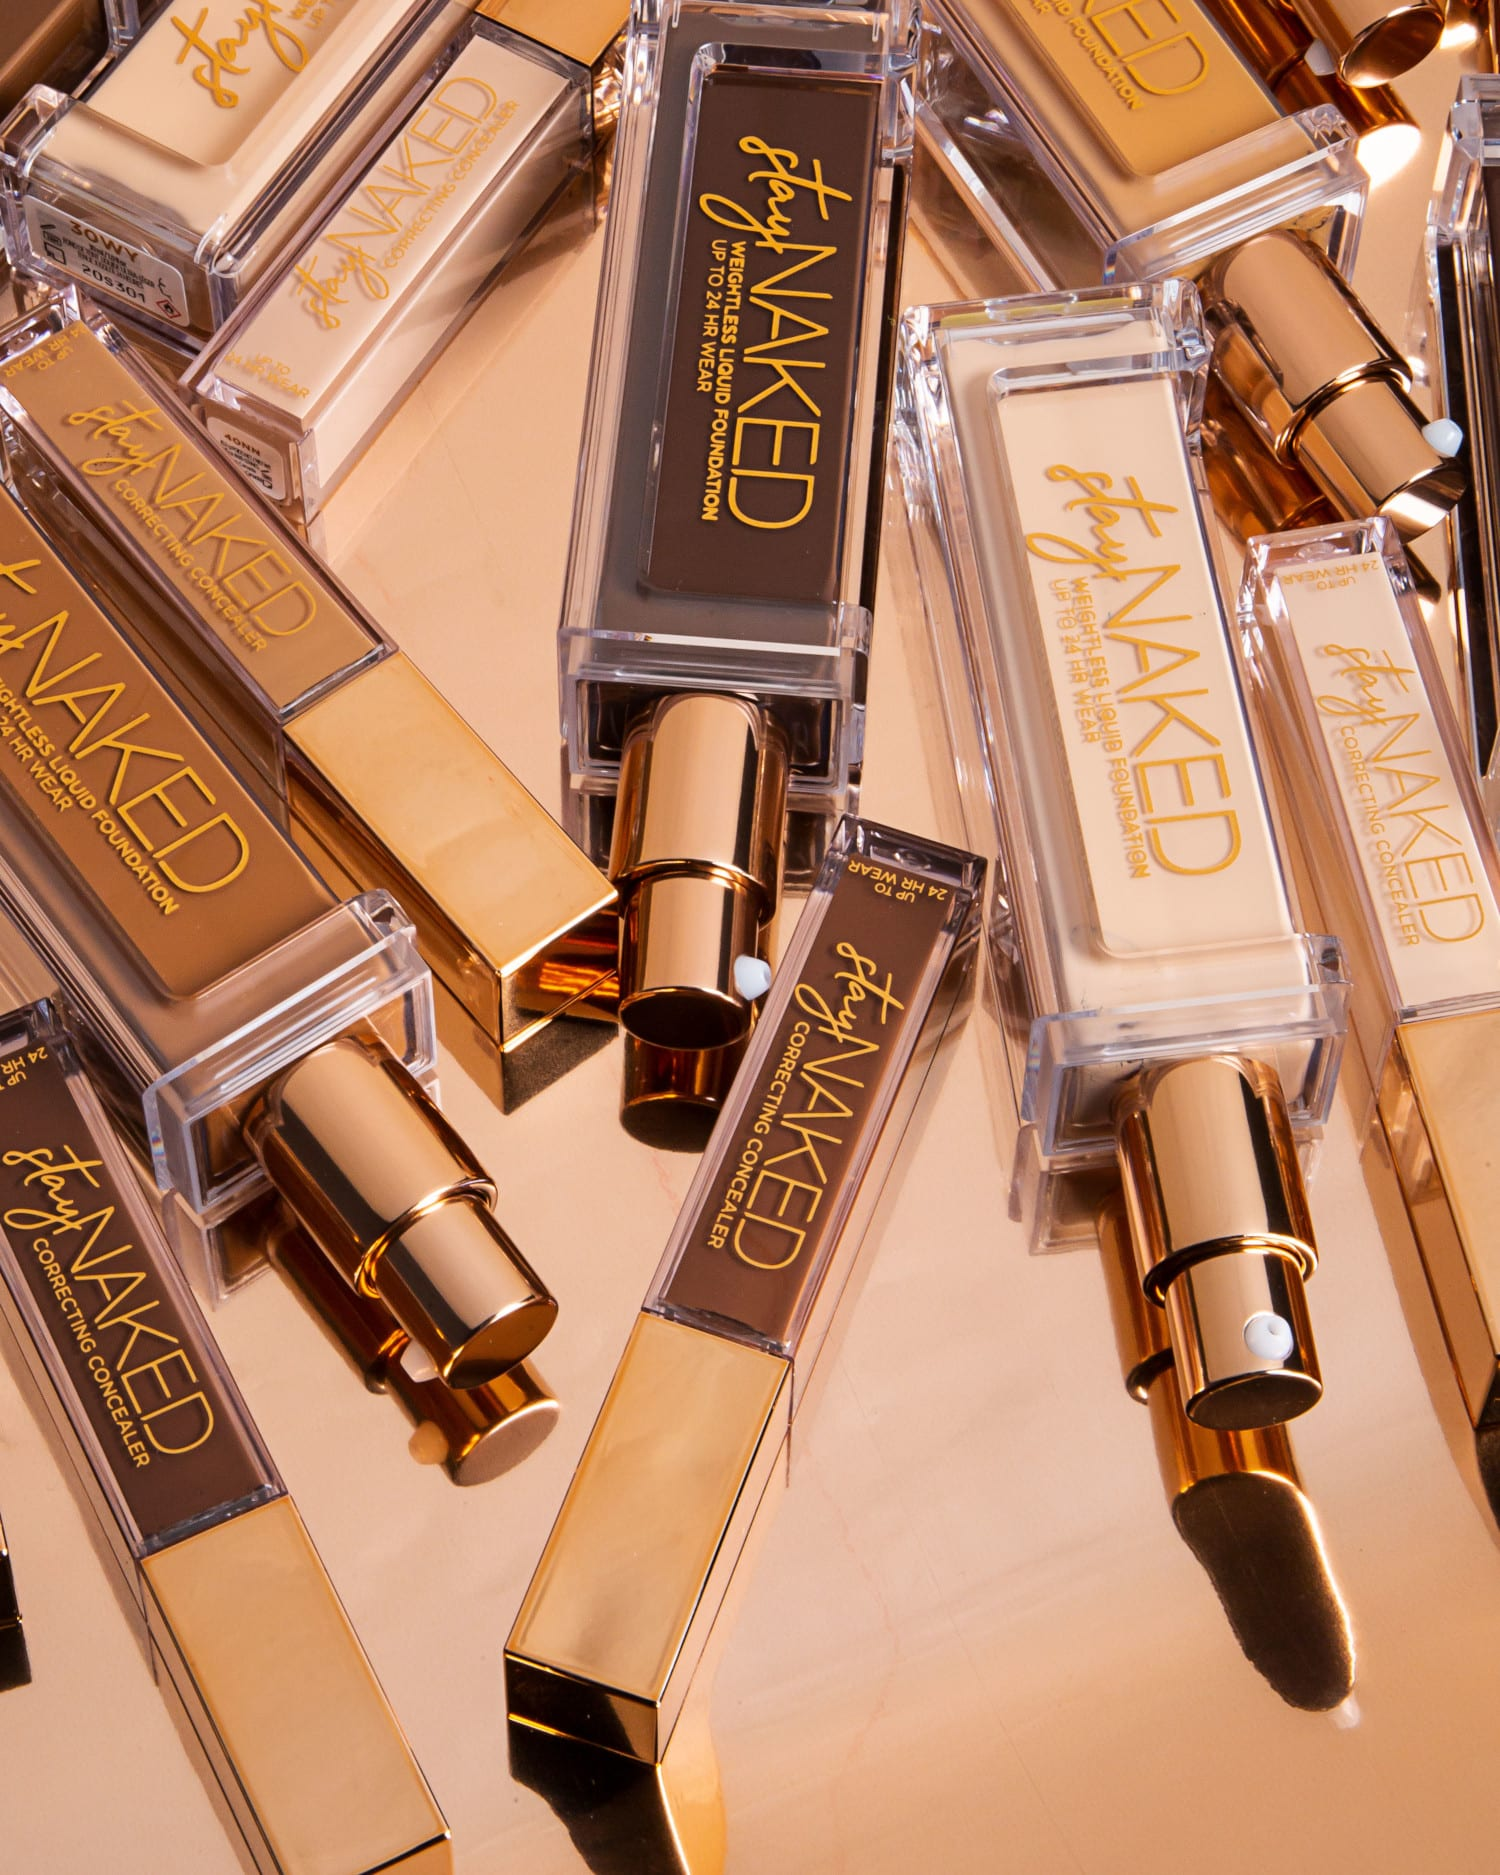 Urban Decay Launch New Stay Naked Foundation and Concealer